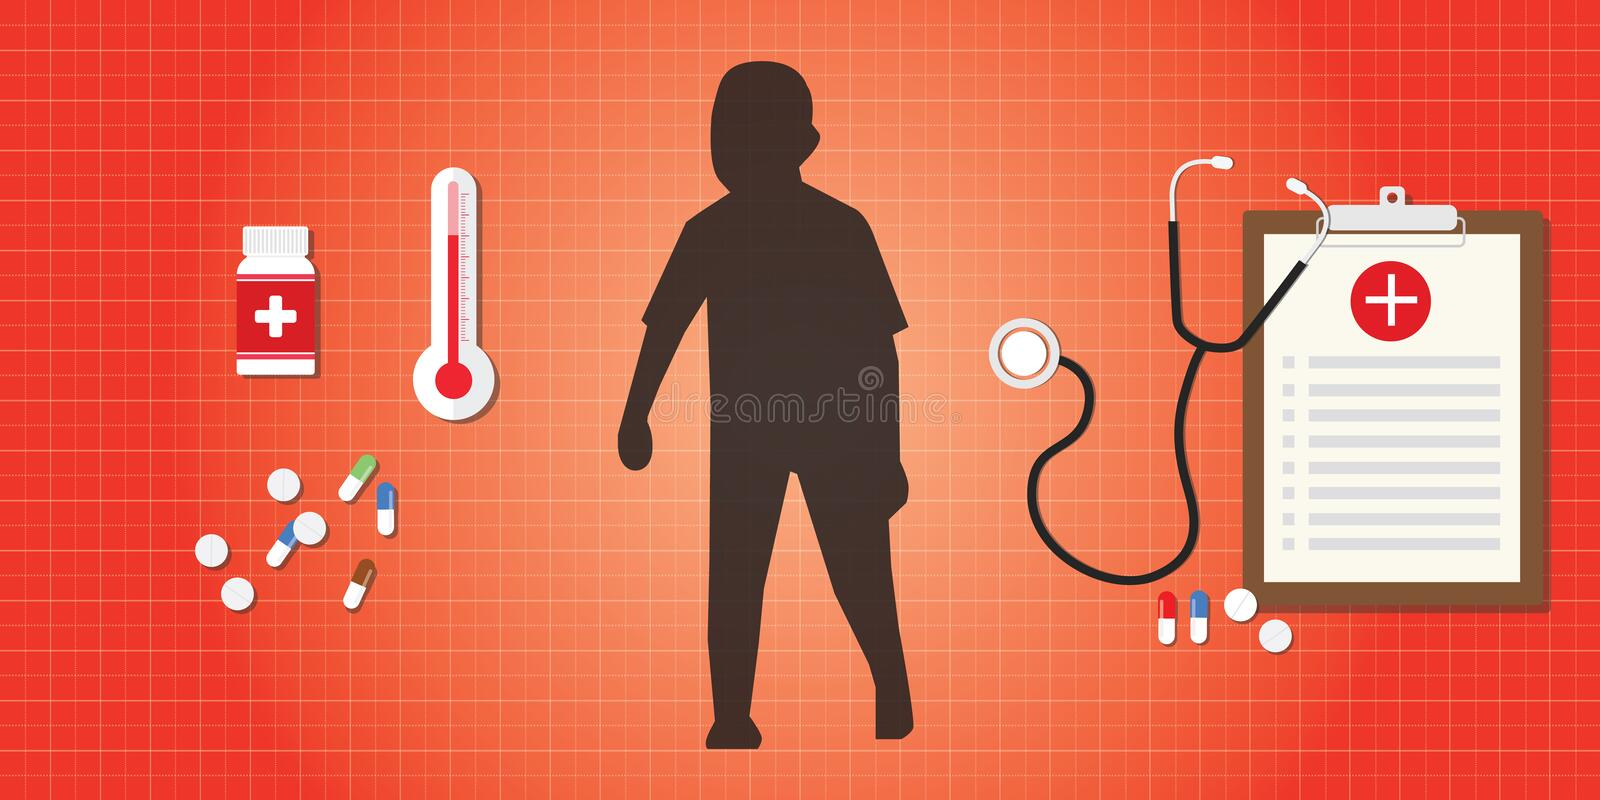 Adhd child illustration with medical record and medicine drugs vector illustration